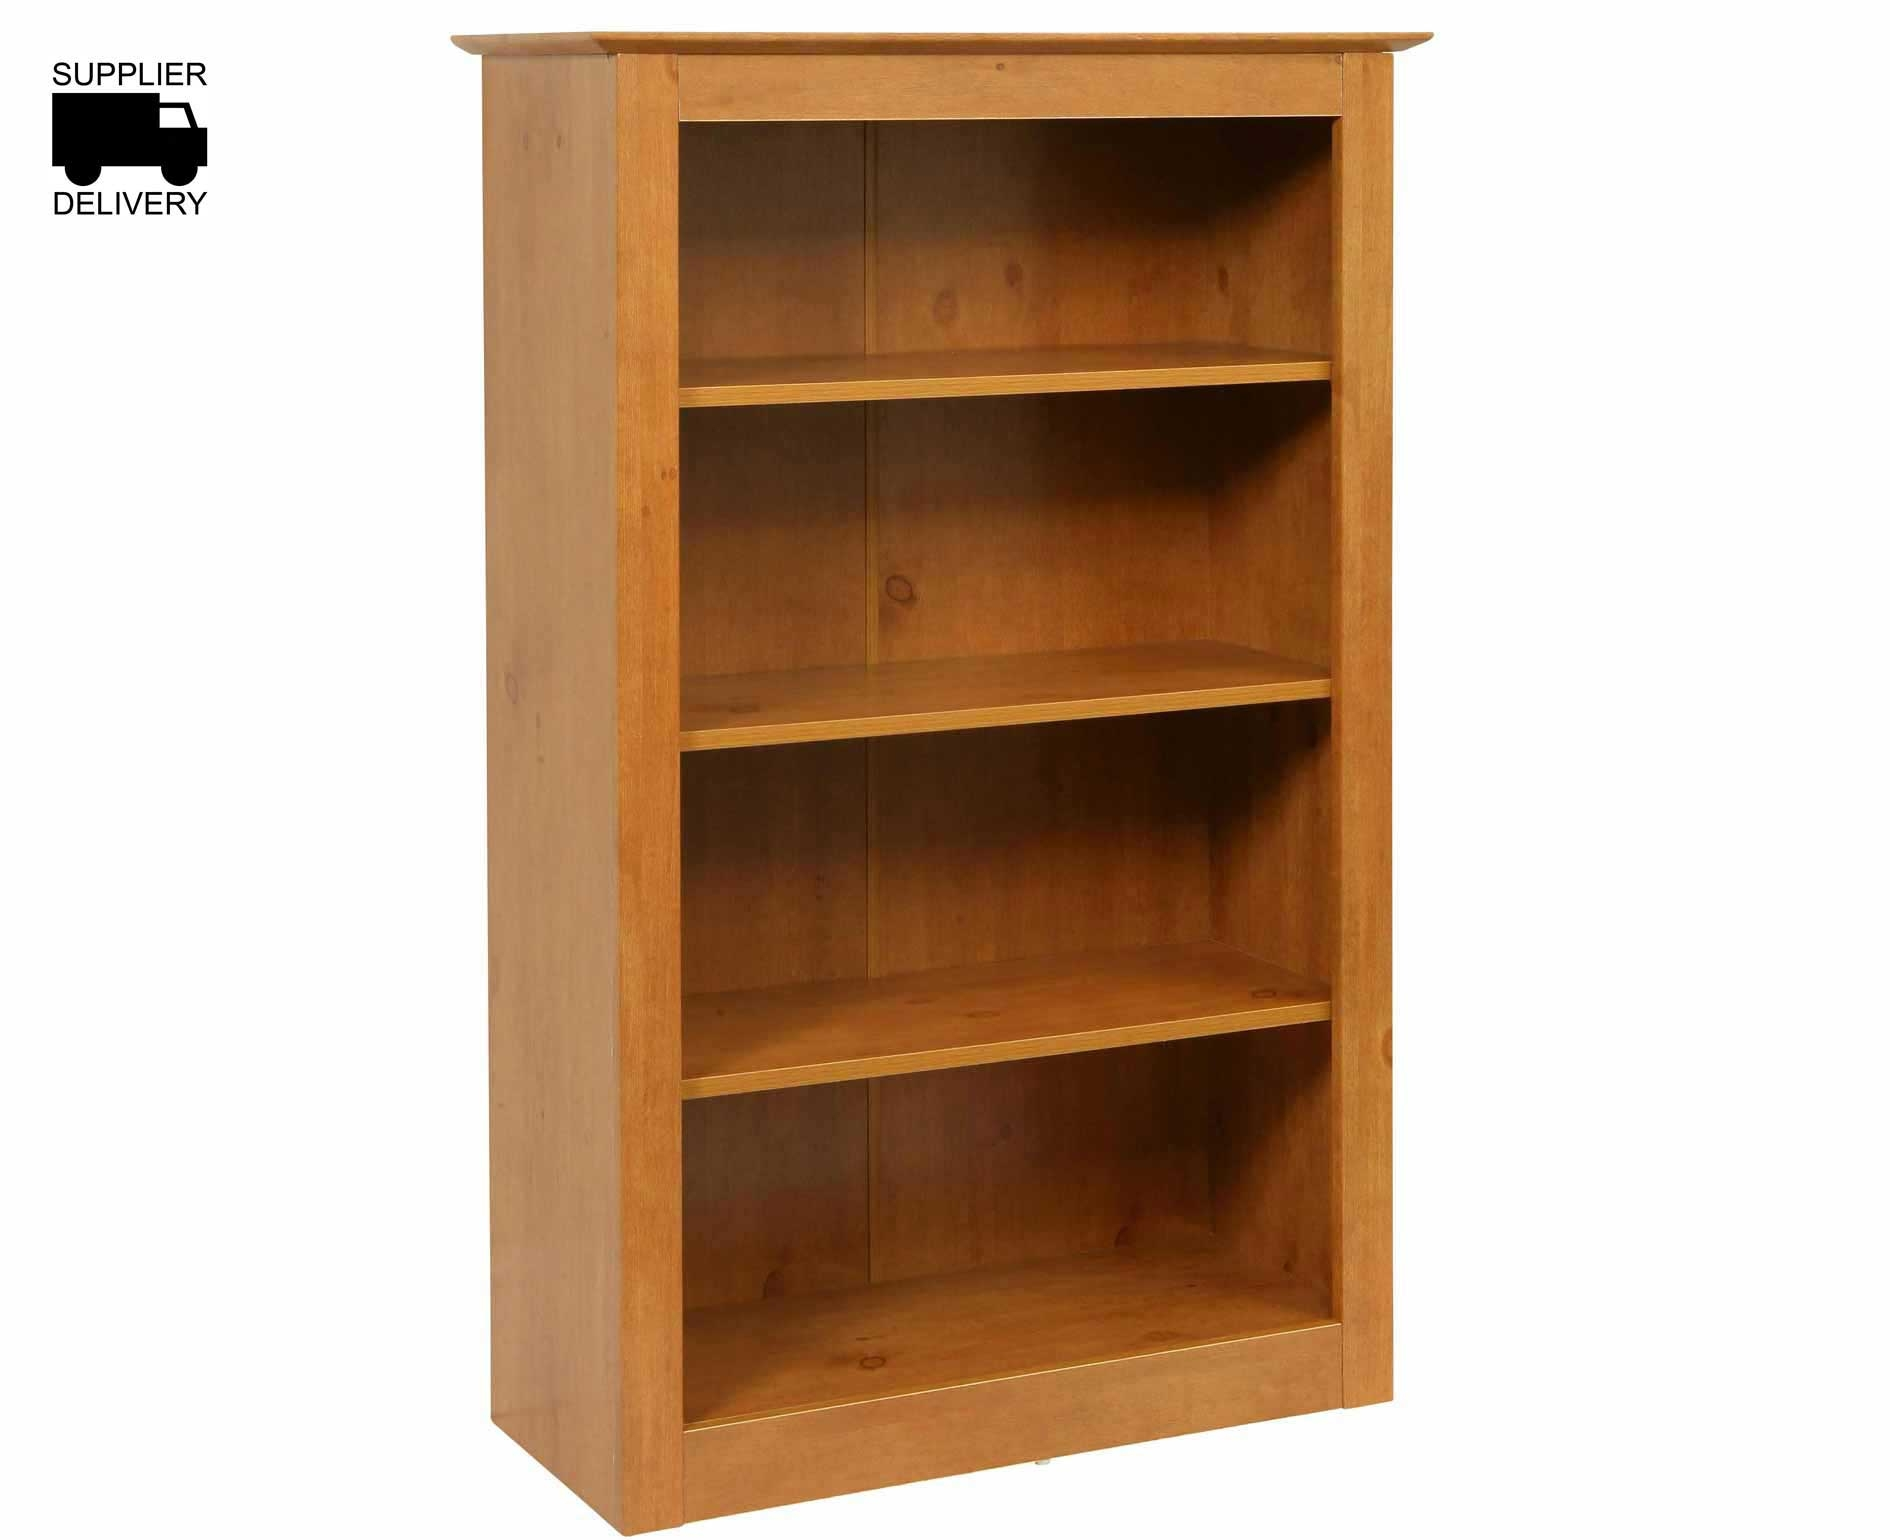 Bookcases Storage Shelving Furniture Storage Ryman Pertaining To Wooden Bookcases (View 7 of 15)